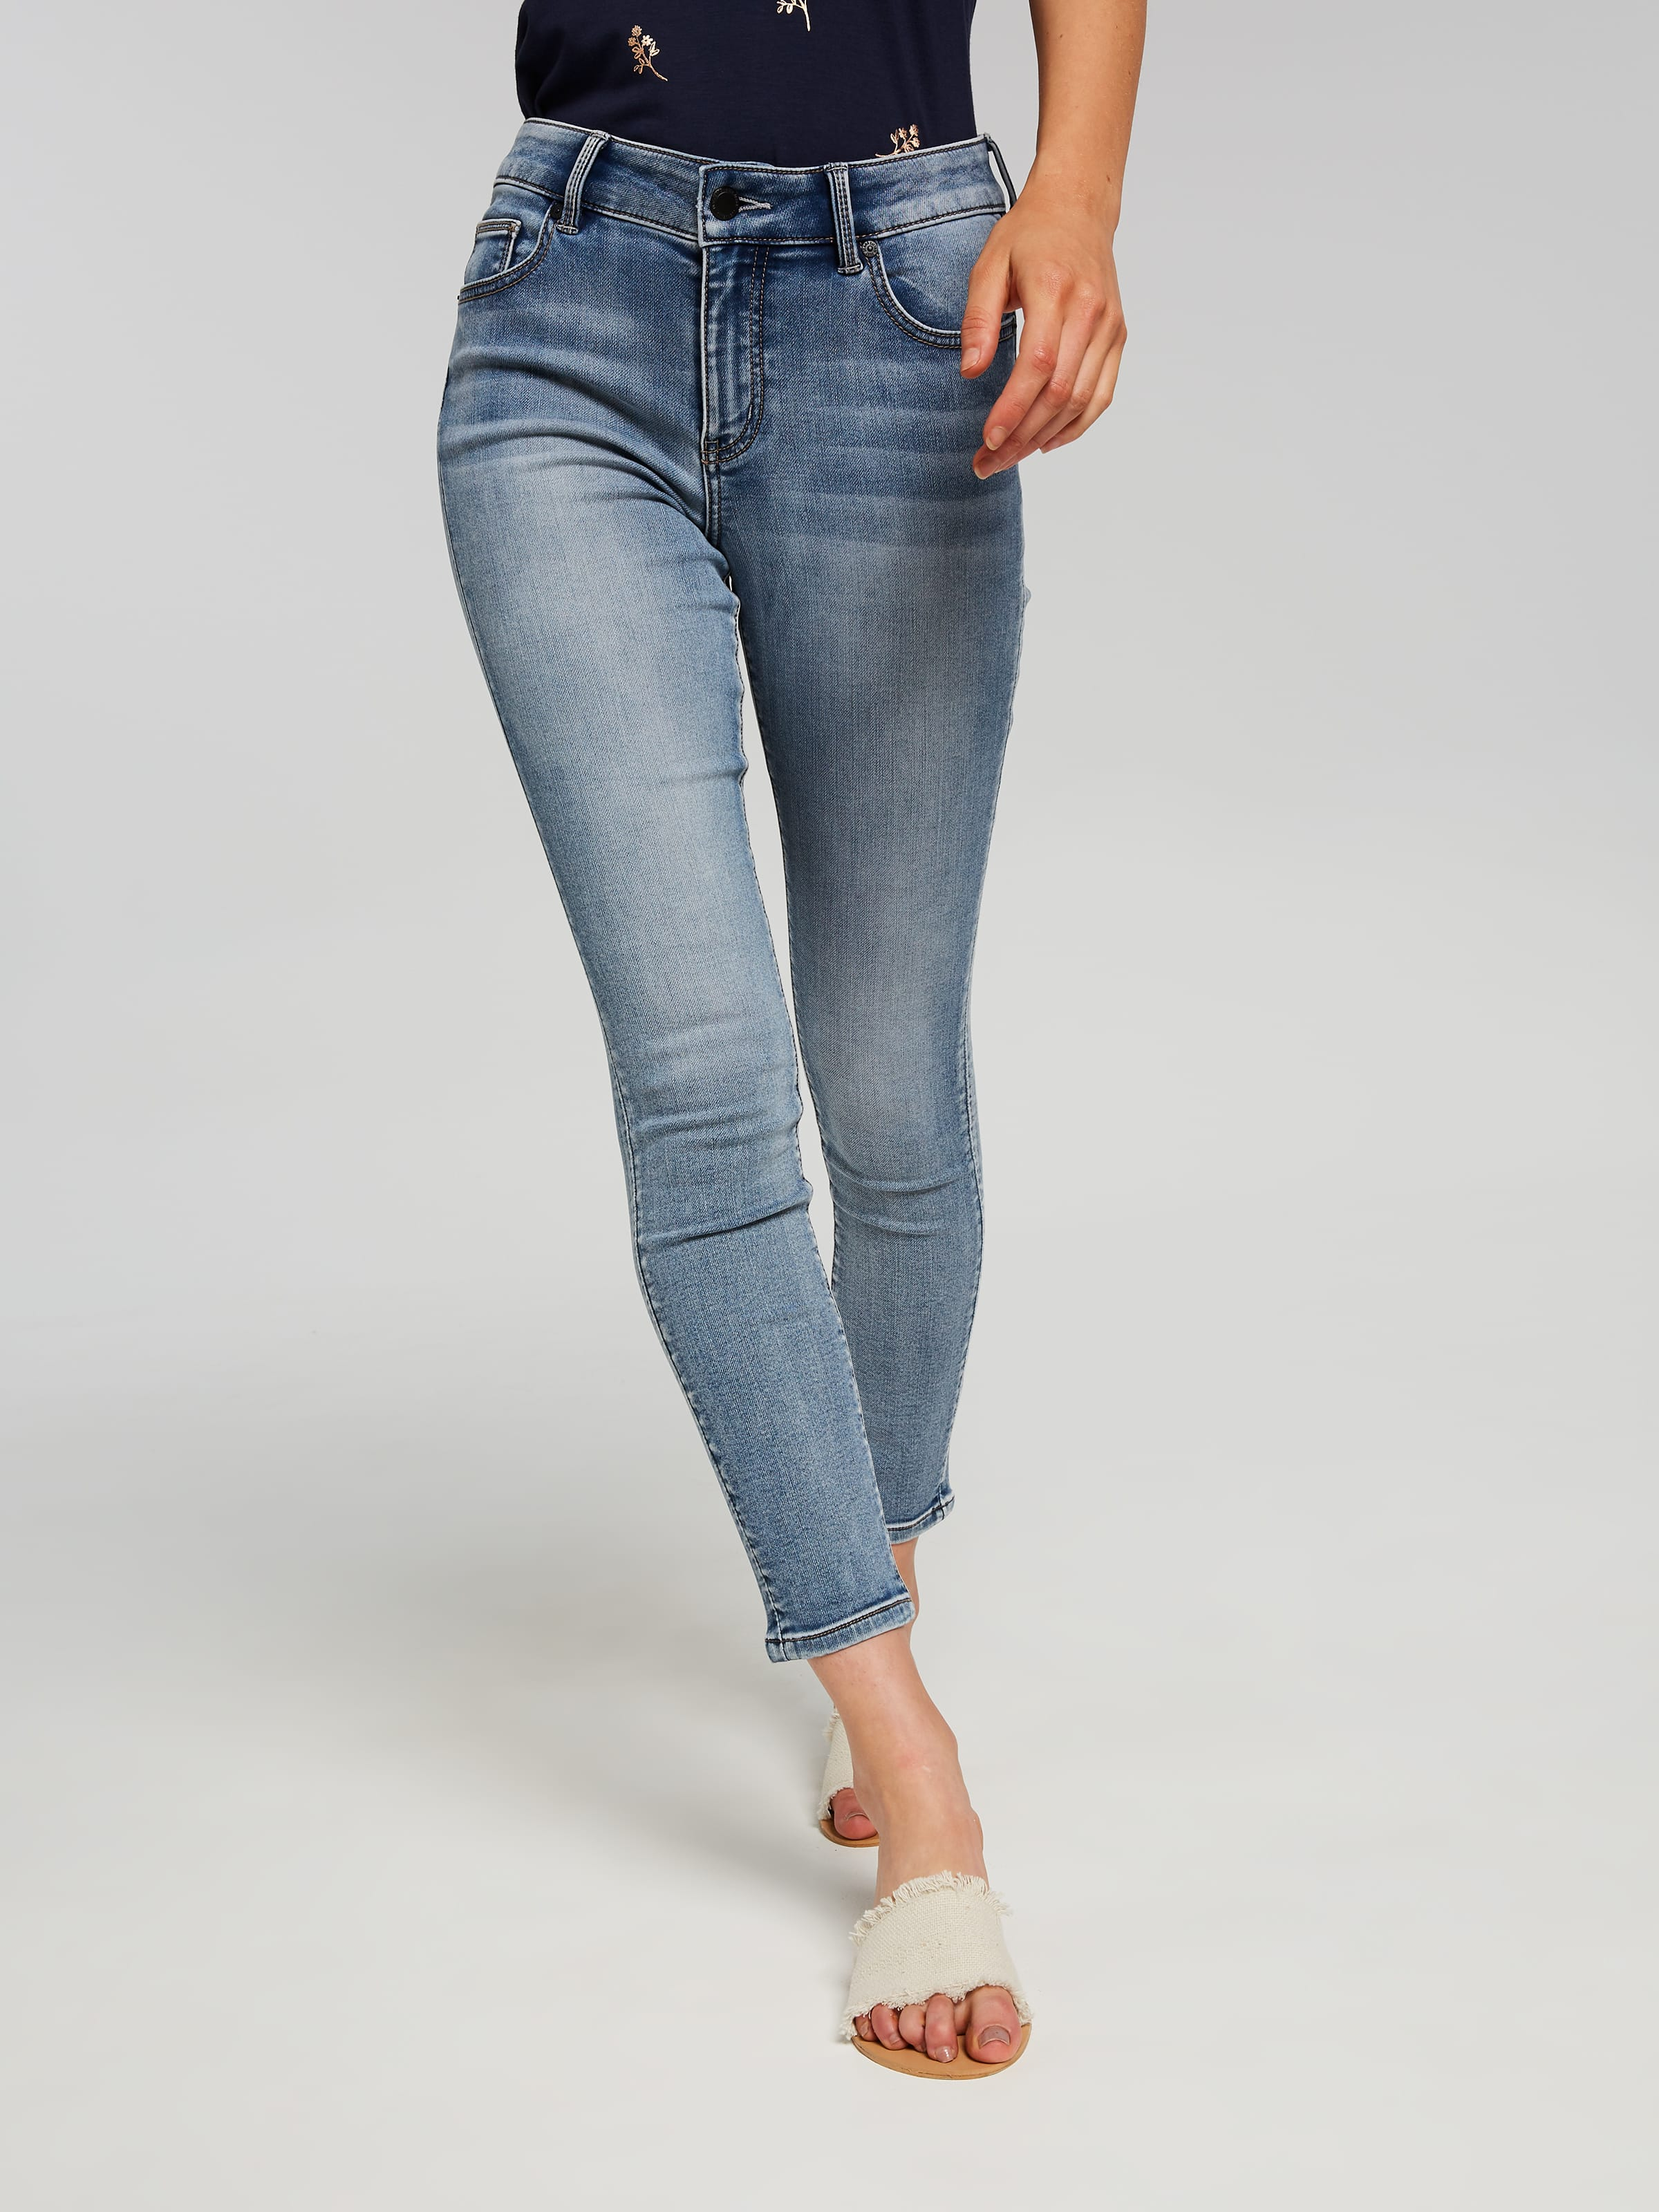 Mid Grey Skinny AVA Jeans Plus size 16 to 32   Yours Clothing